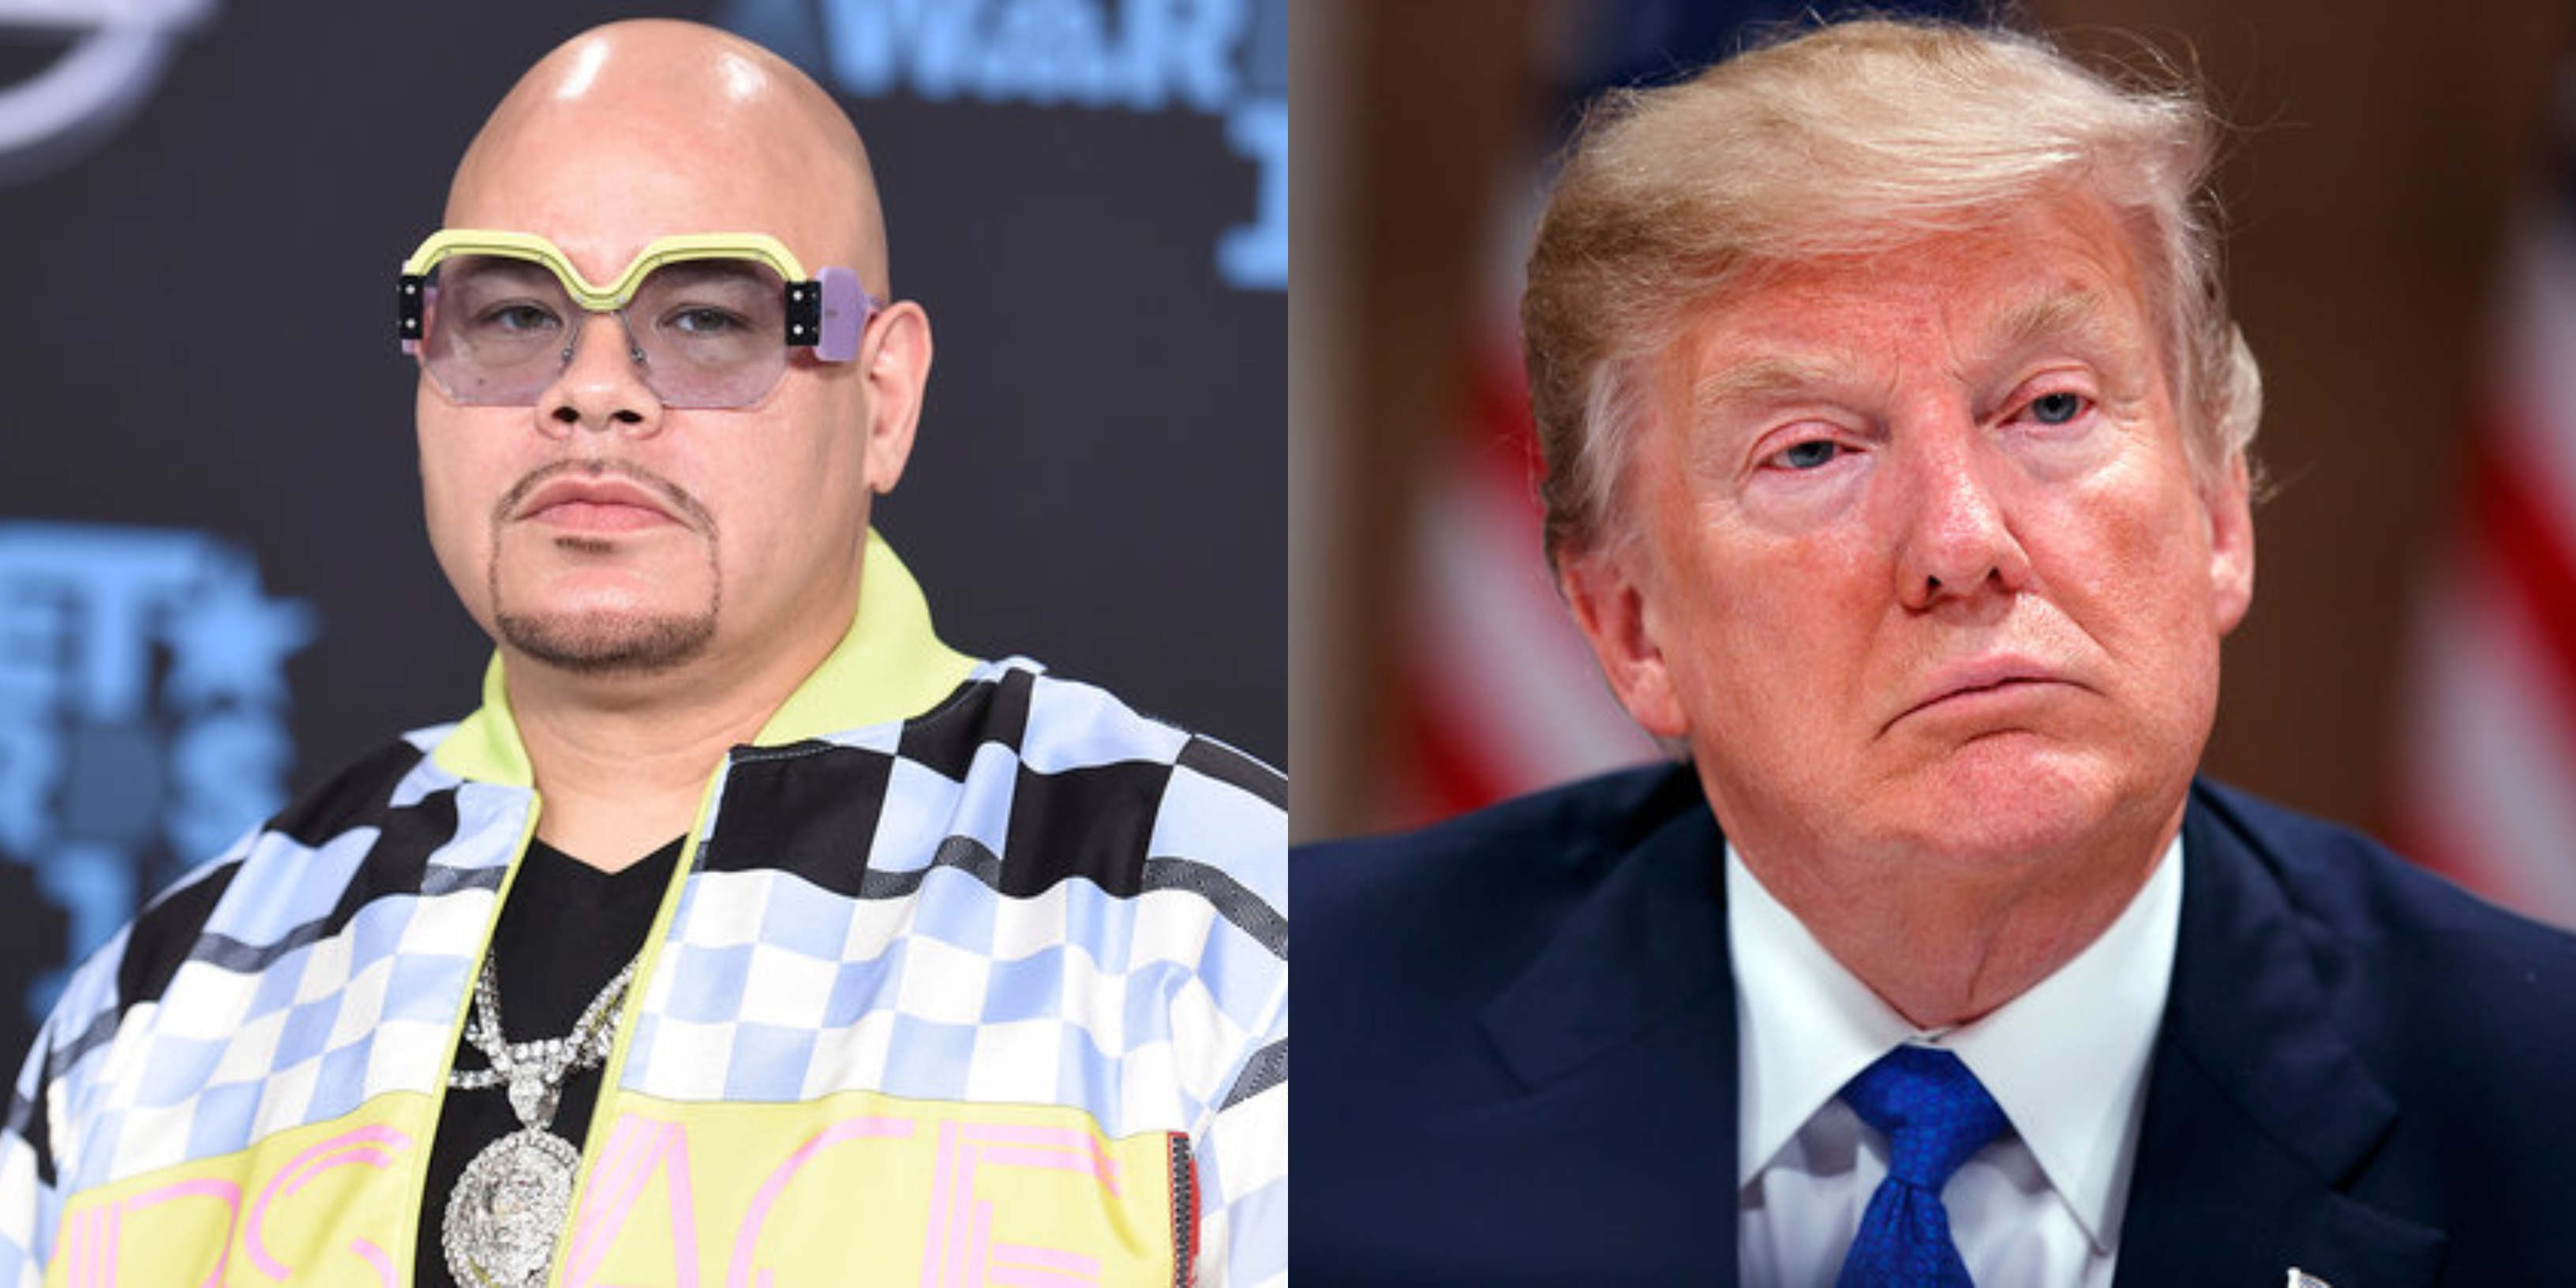 Fat Joe Says Donald Trump is 'Delusional' for Claims About Hurricane Relief in Puerto Rico